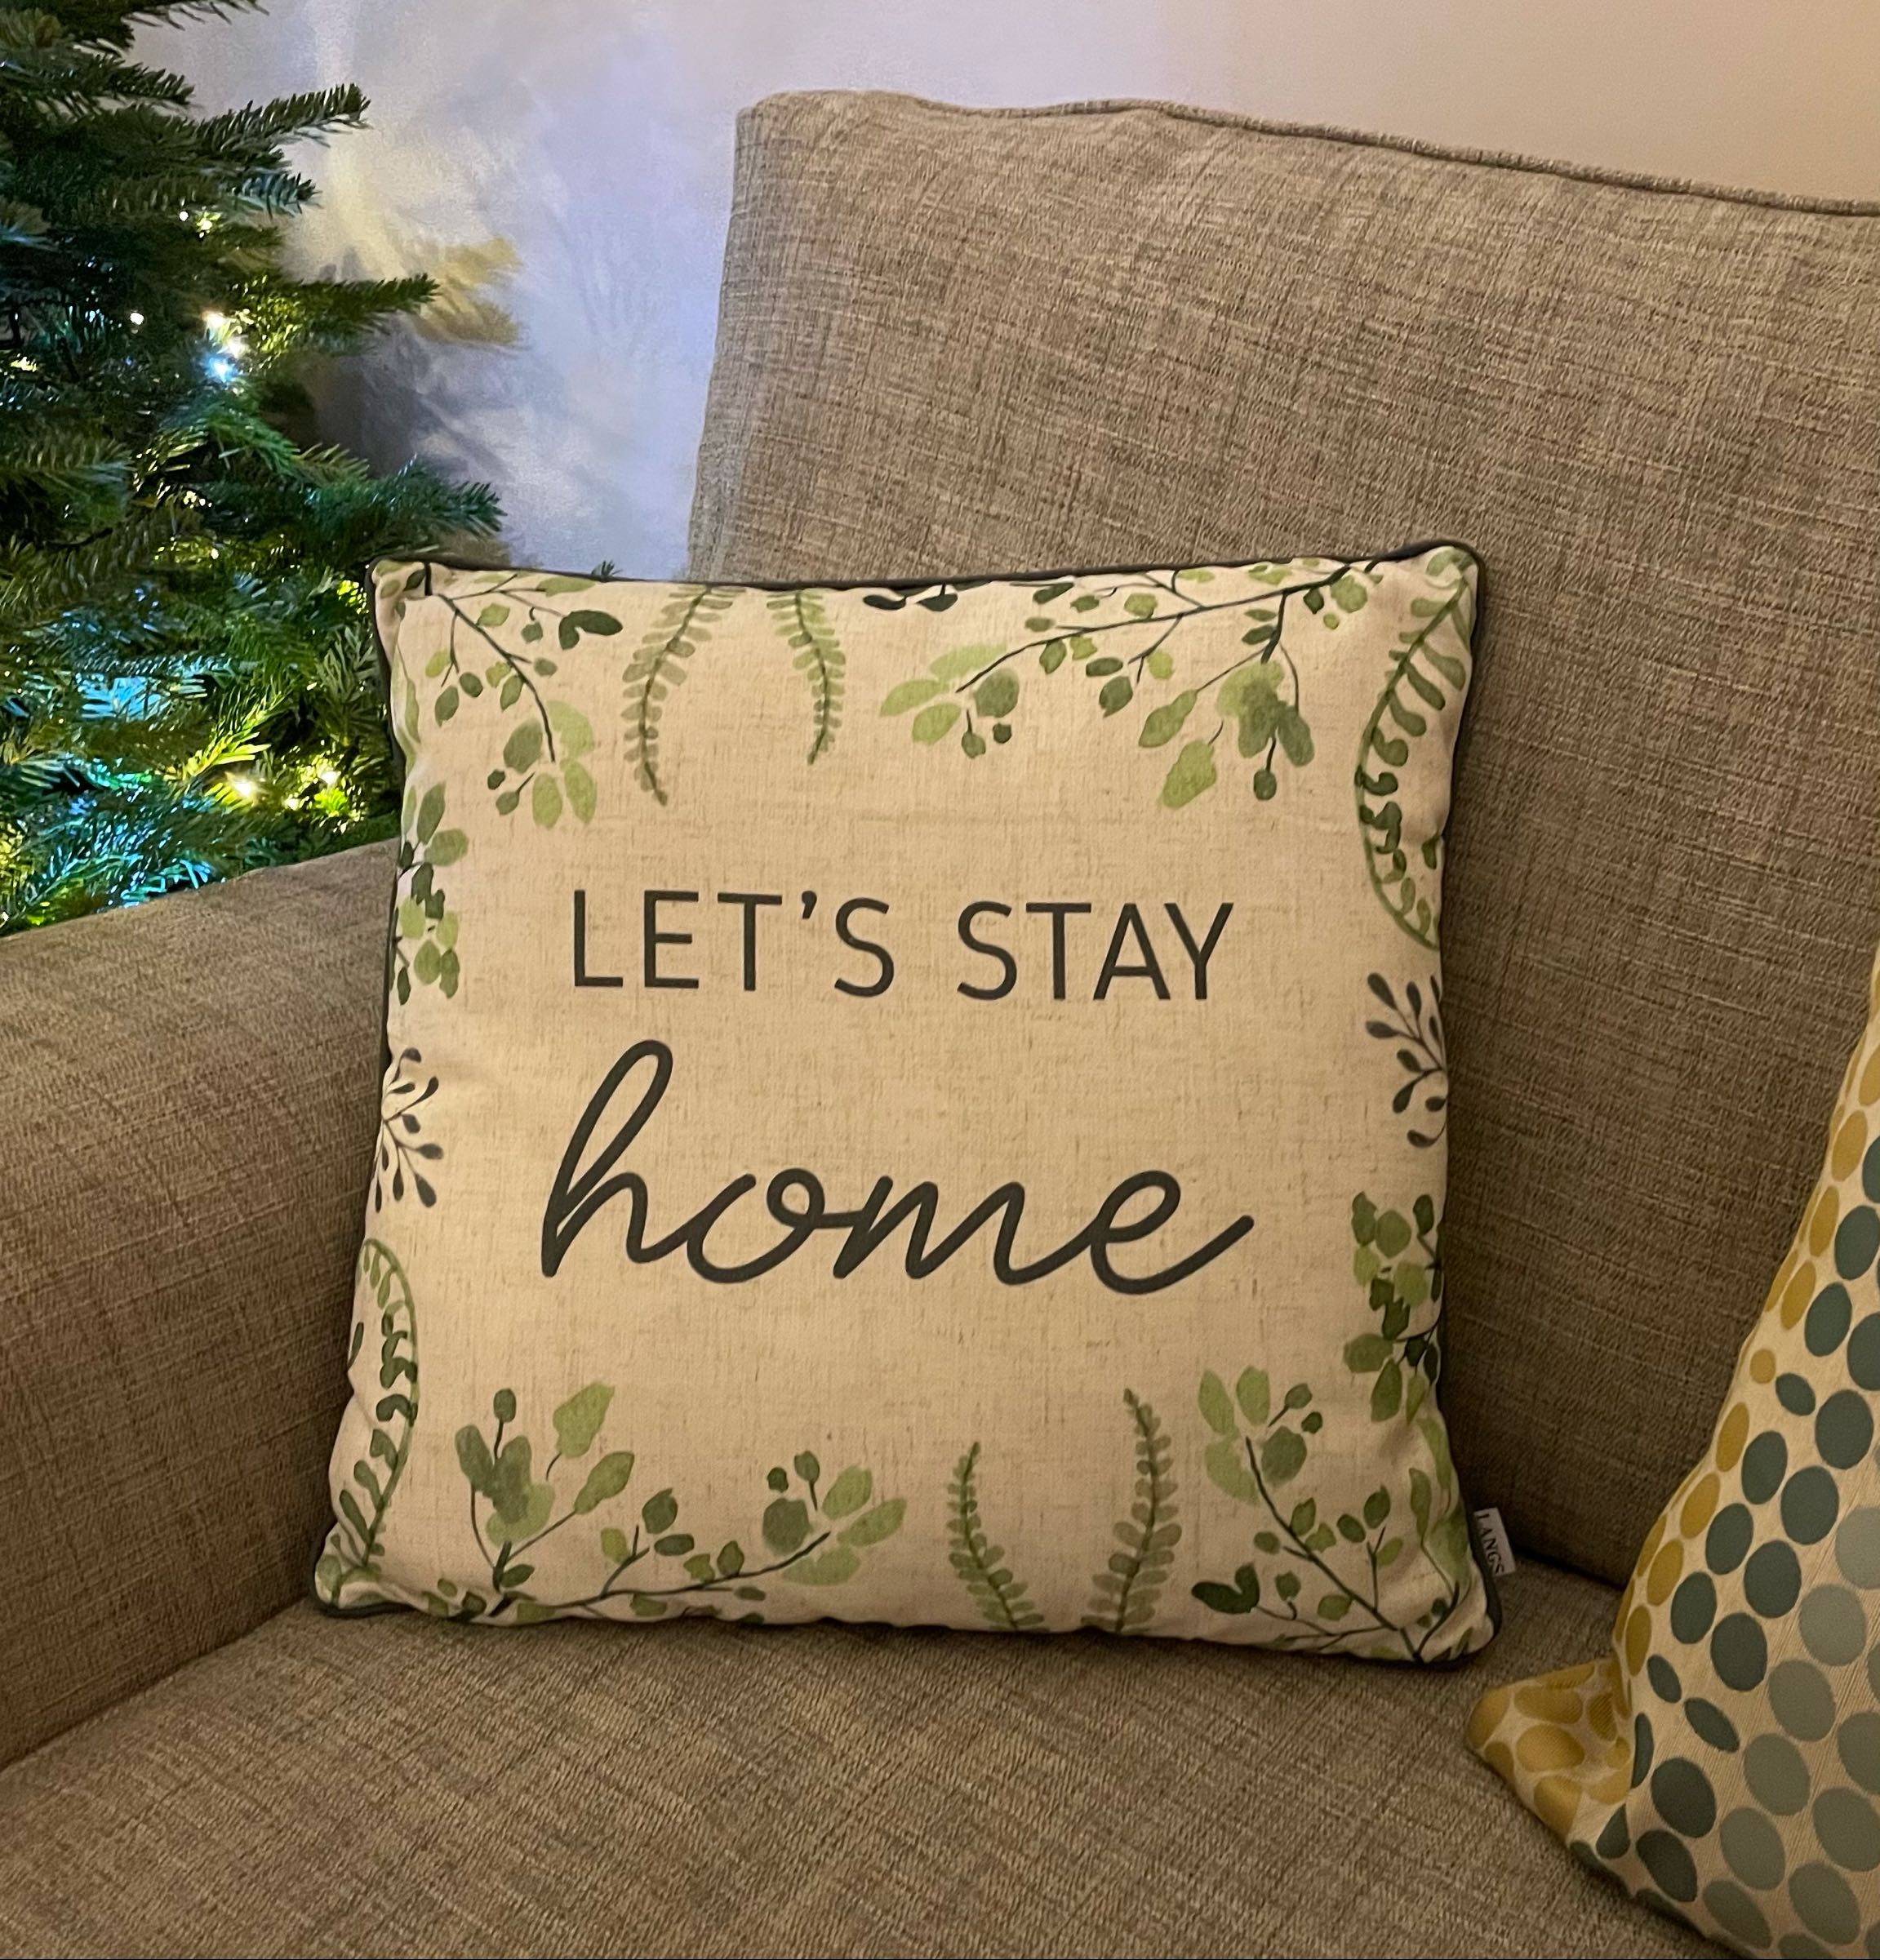 Let's stay home cushion